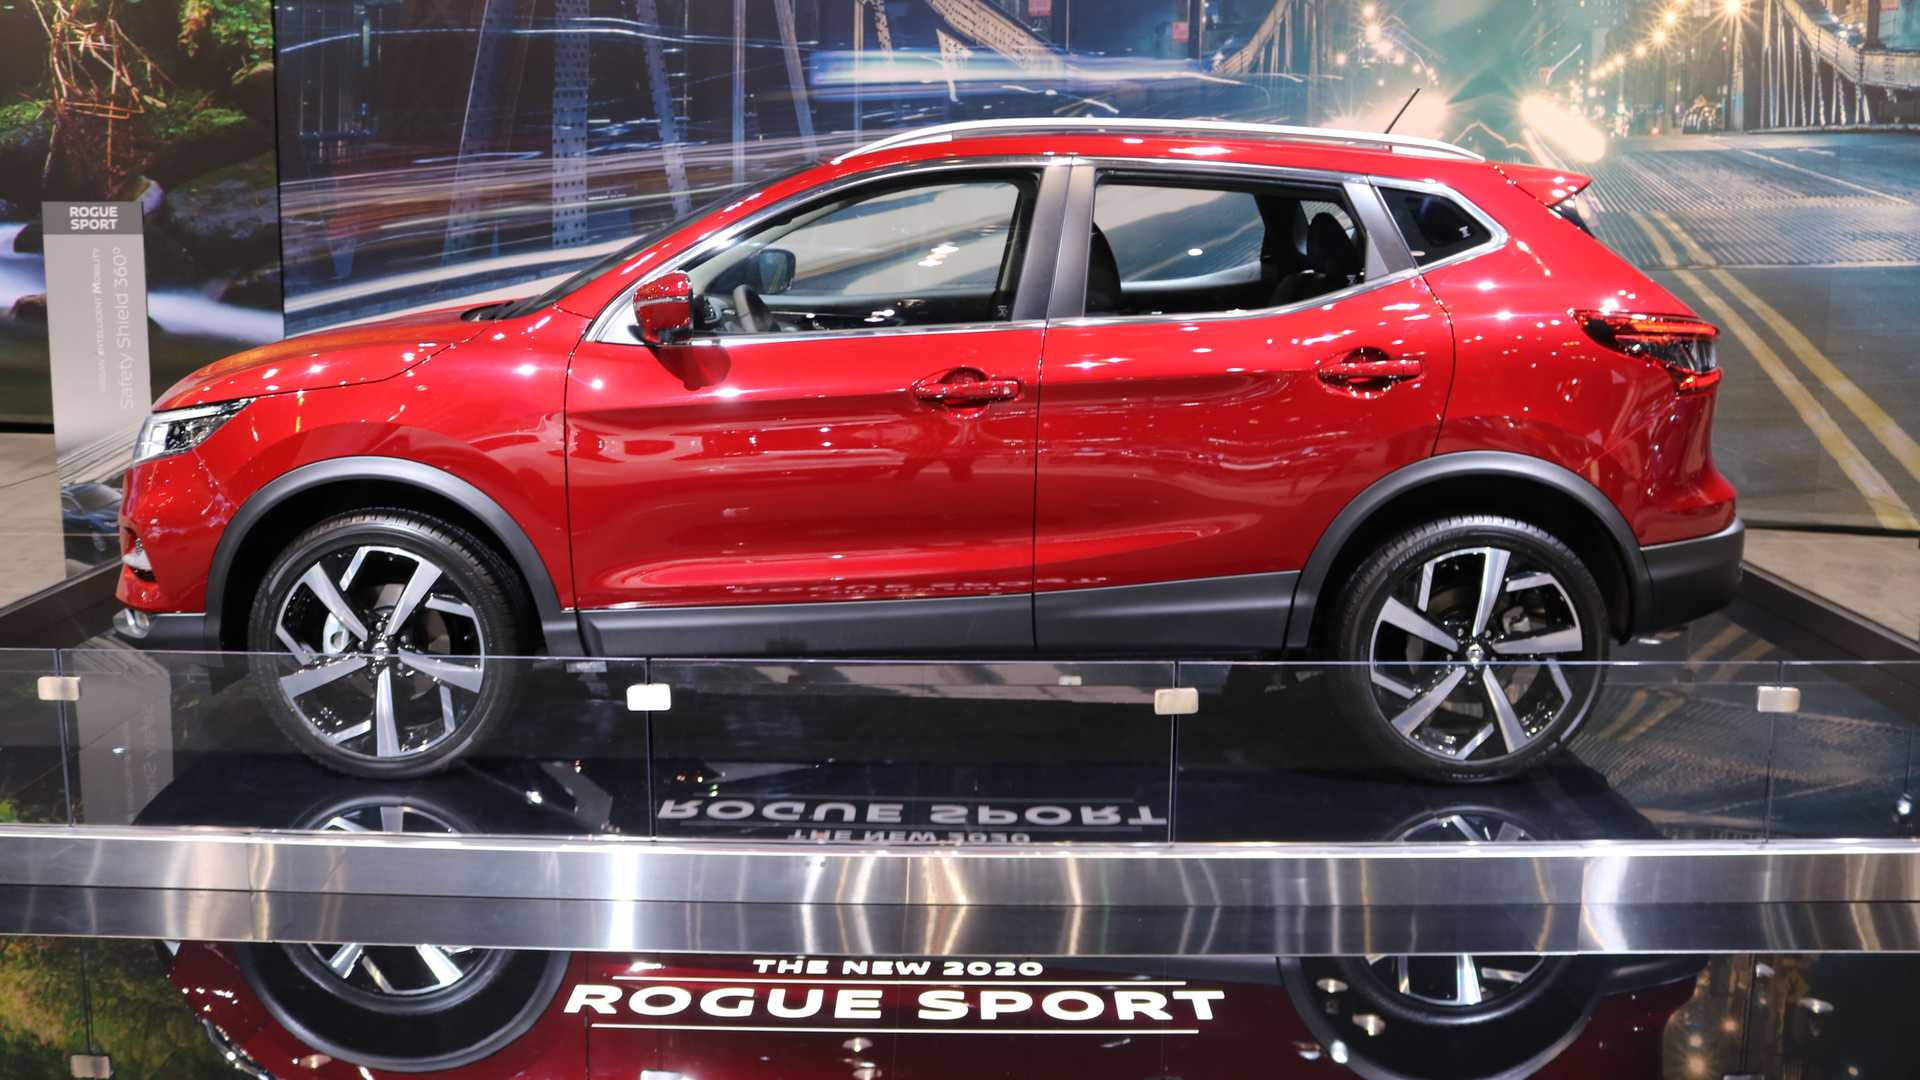 93 Best Review Nissan Rogue 2020 Price Picture with Nissan Rogue 2020 Price